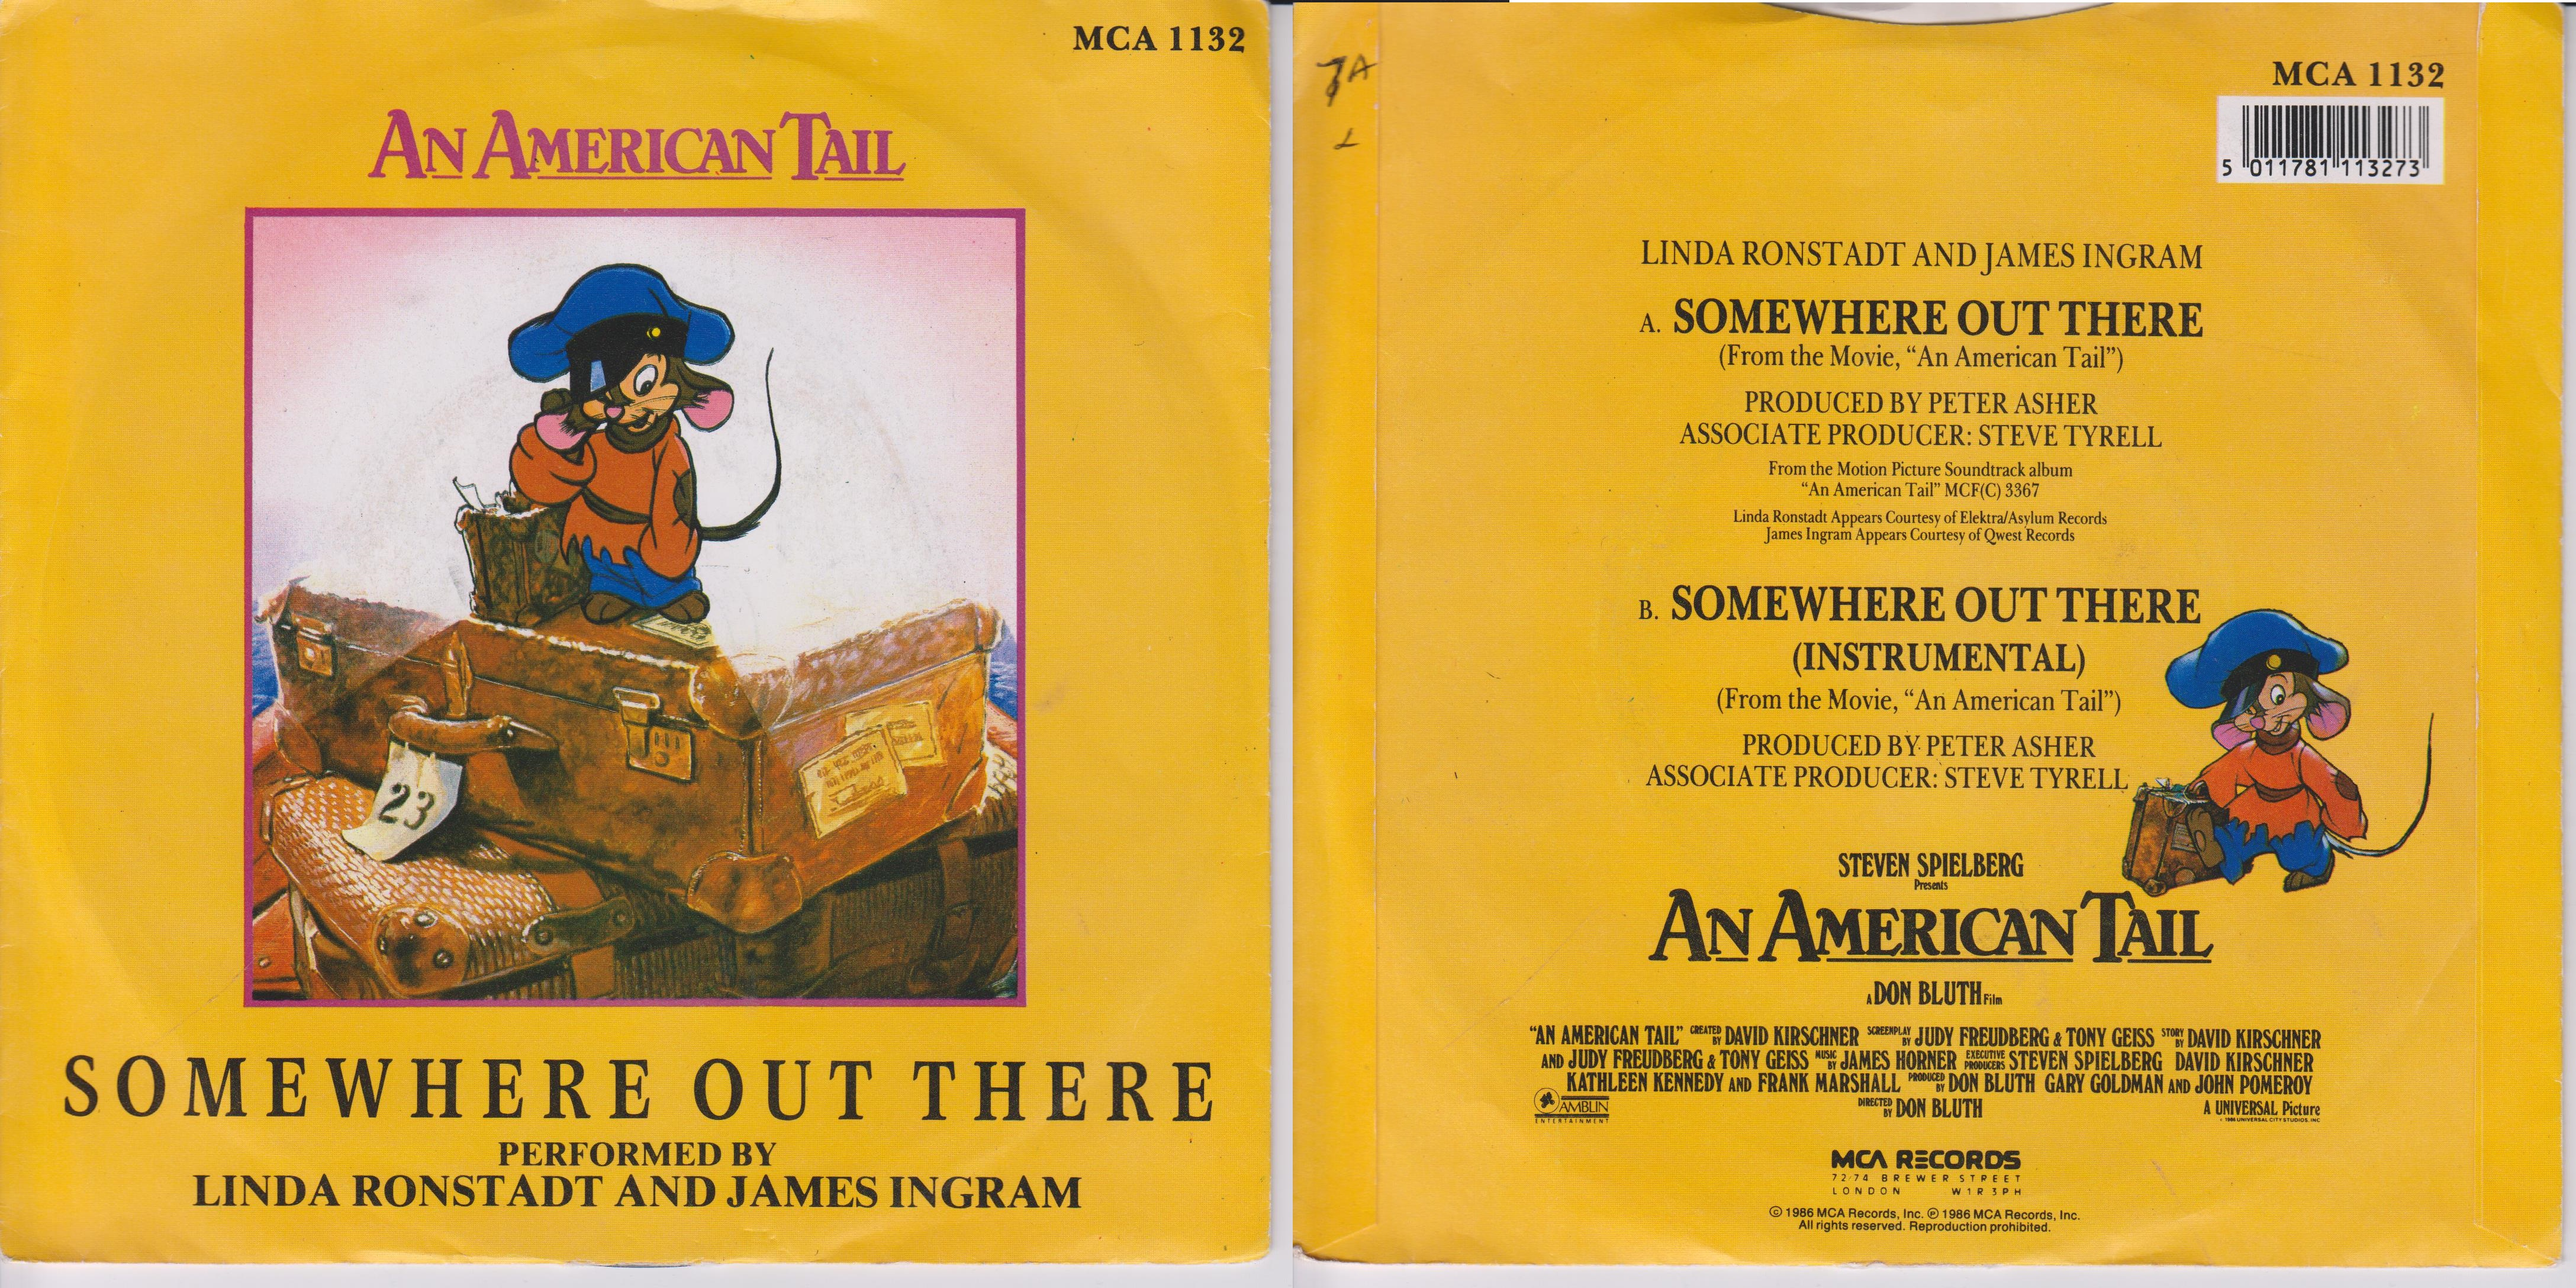 Linda Ronstadt / James Ingram - Somewhere Out There